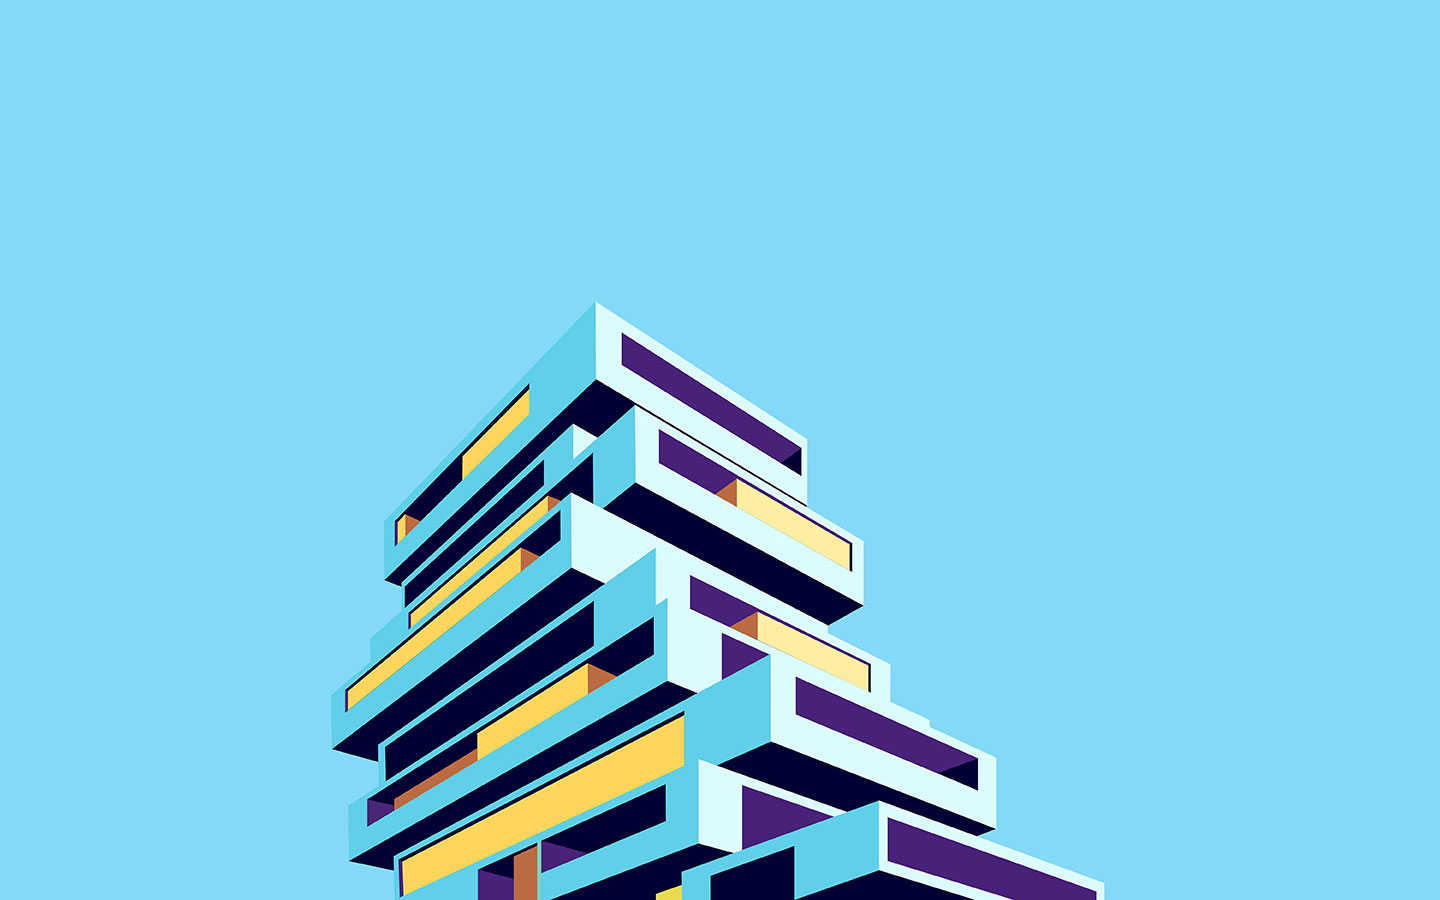 Poster design for architecture - Zarvos Architecture Posters